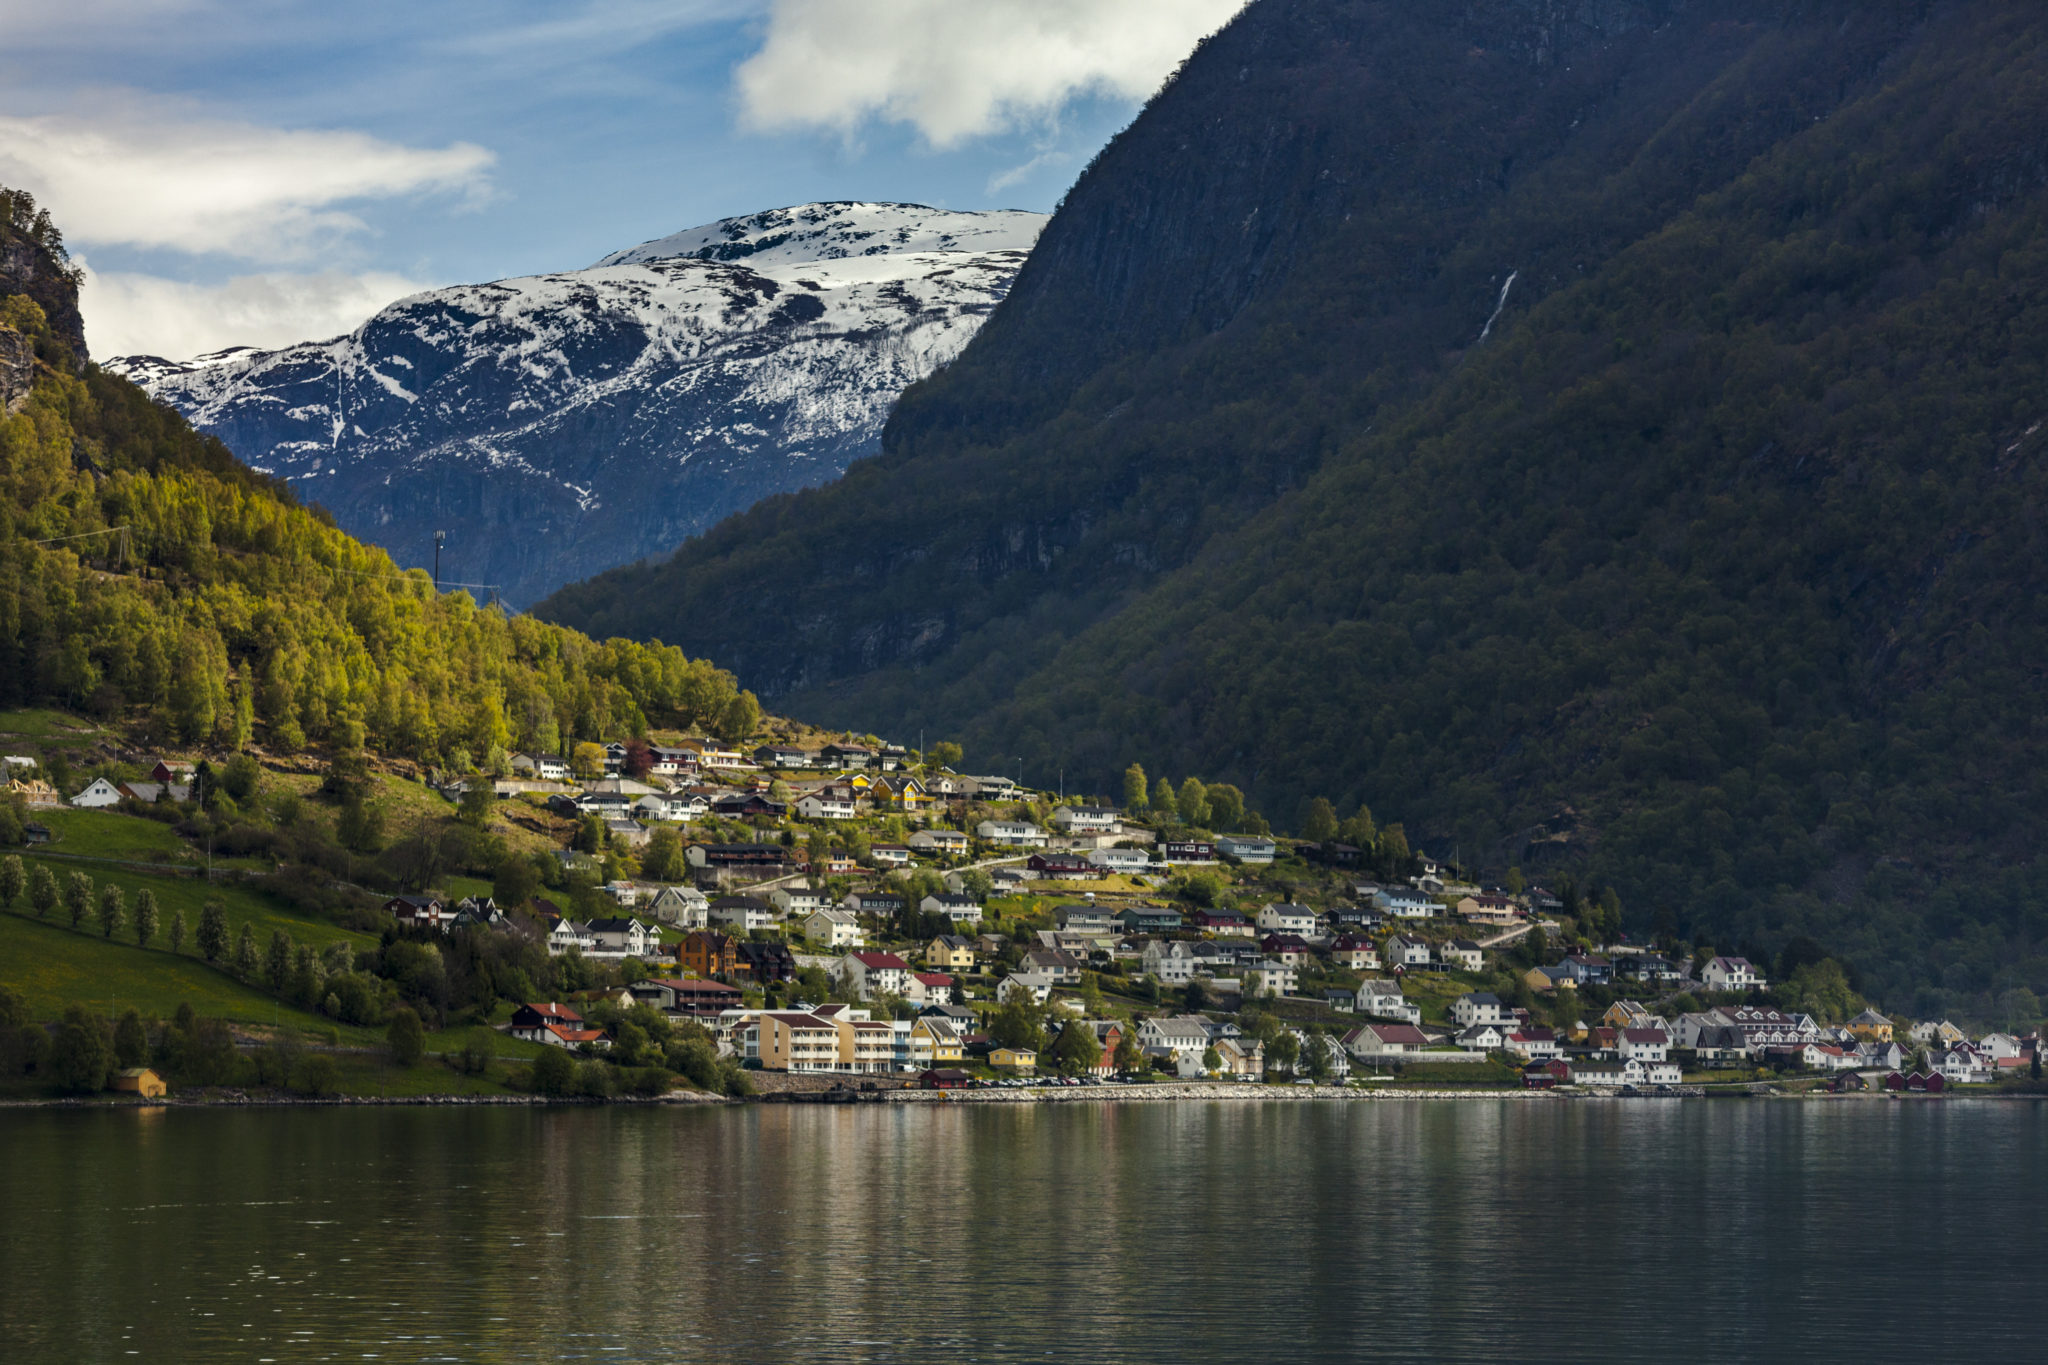 Norway Flam Village Mountains Fjord - Jeff Garriock, Trip to Norway